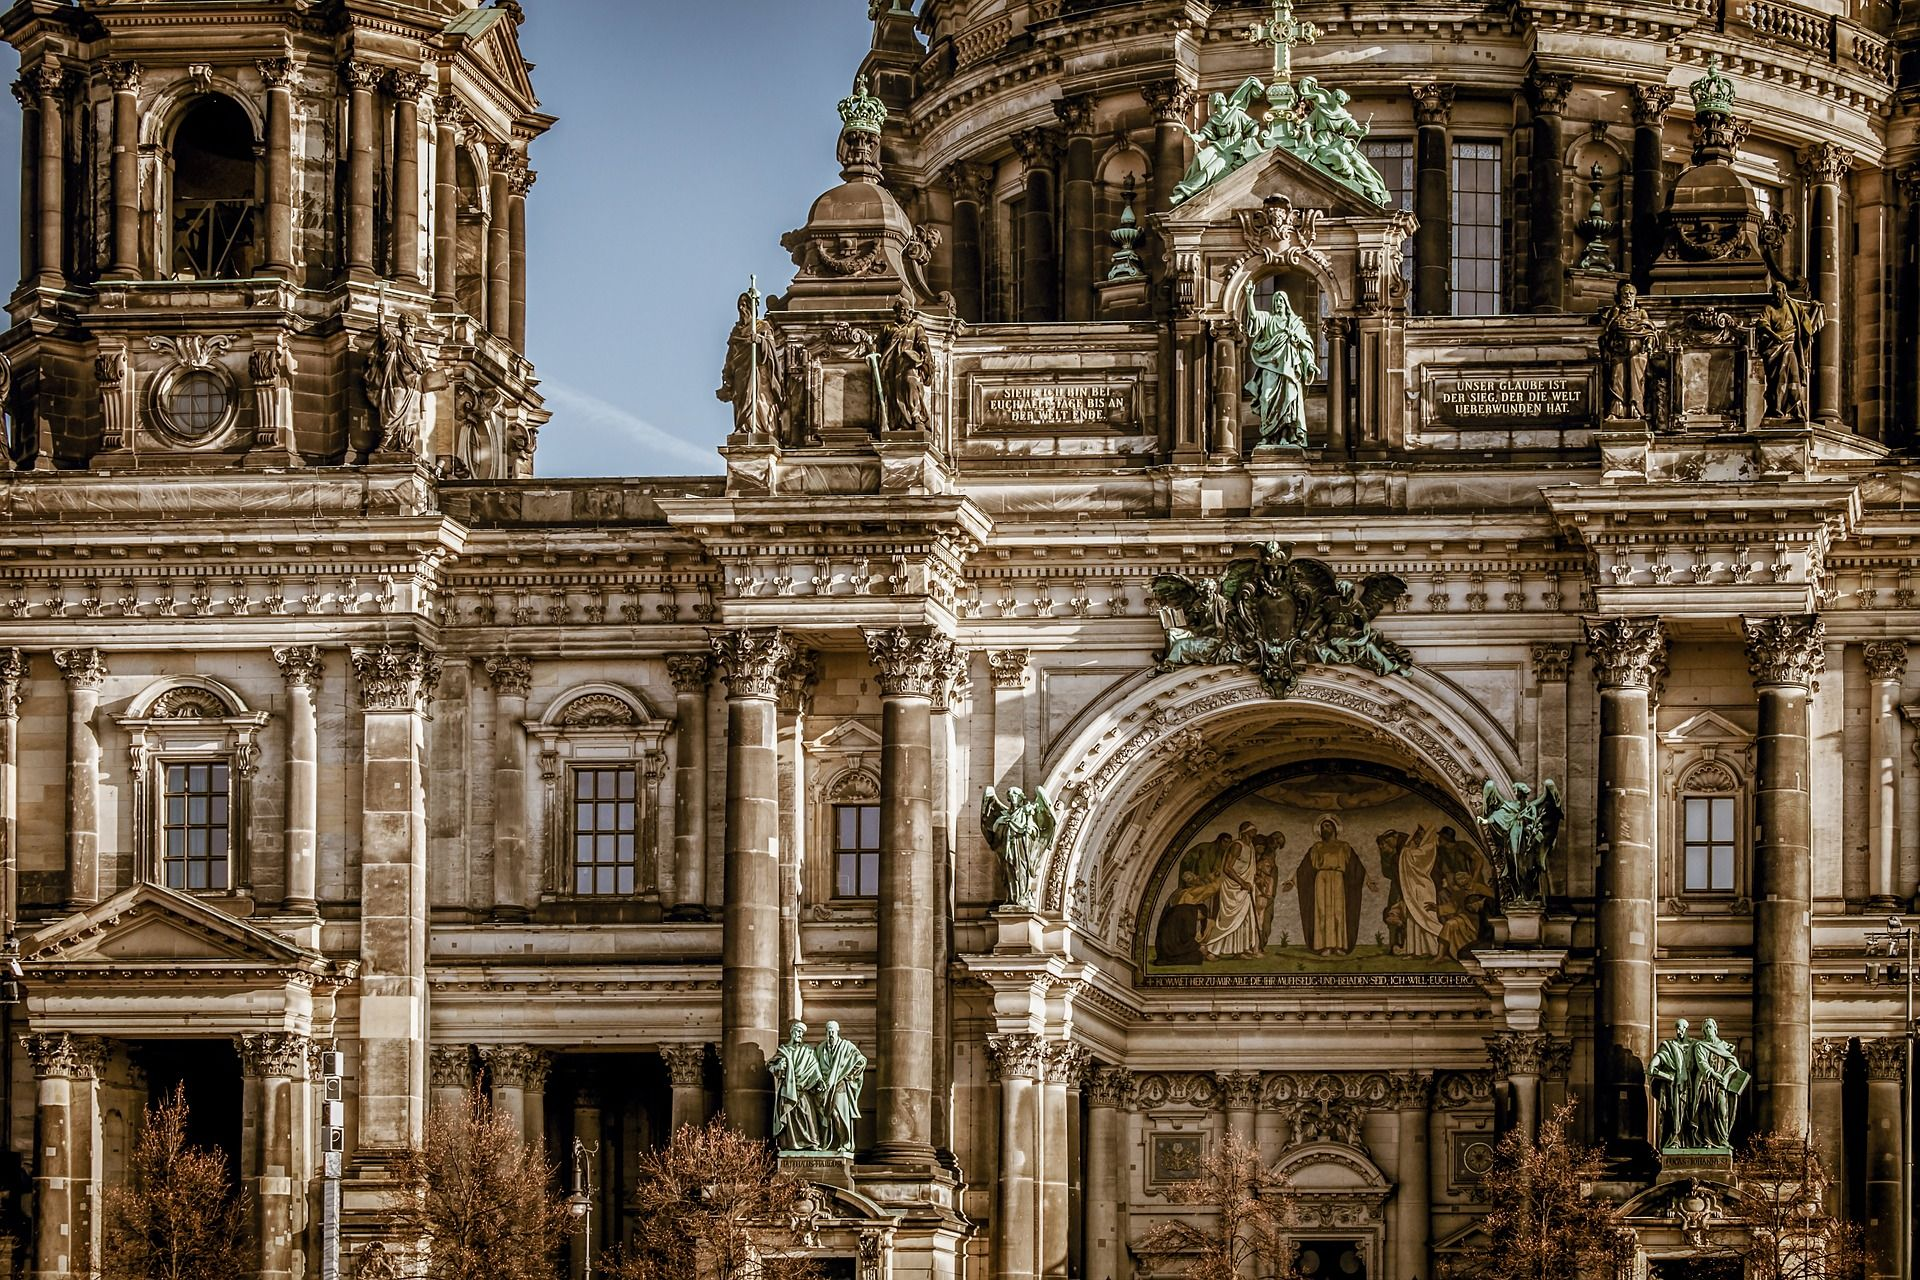 berlin-cathedral-3592874_1920- pixabay free